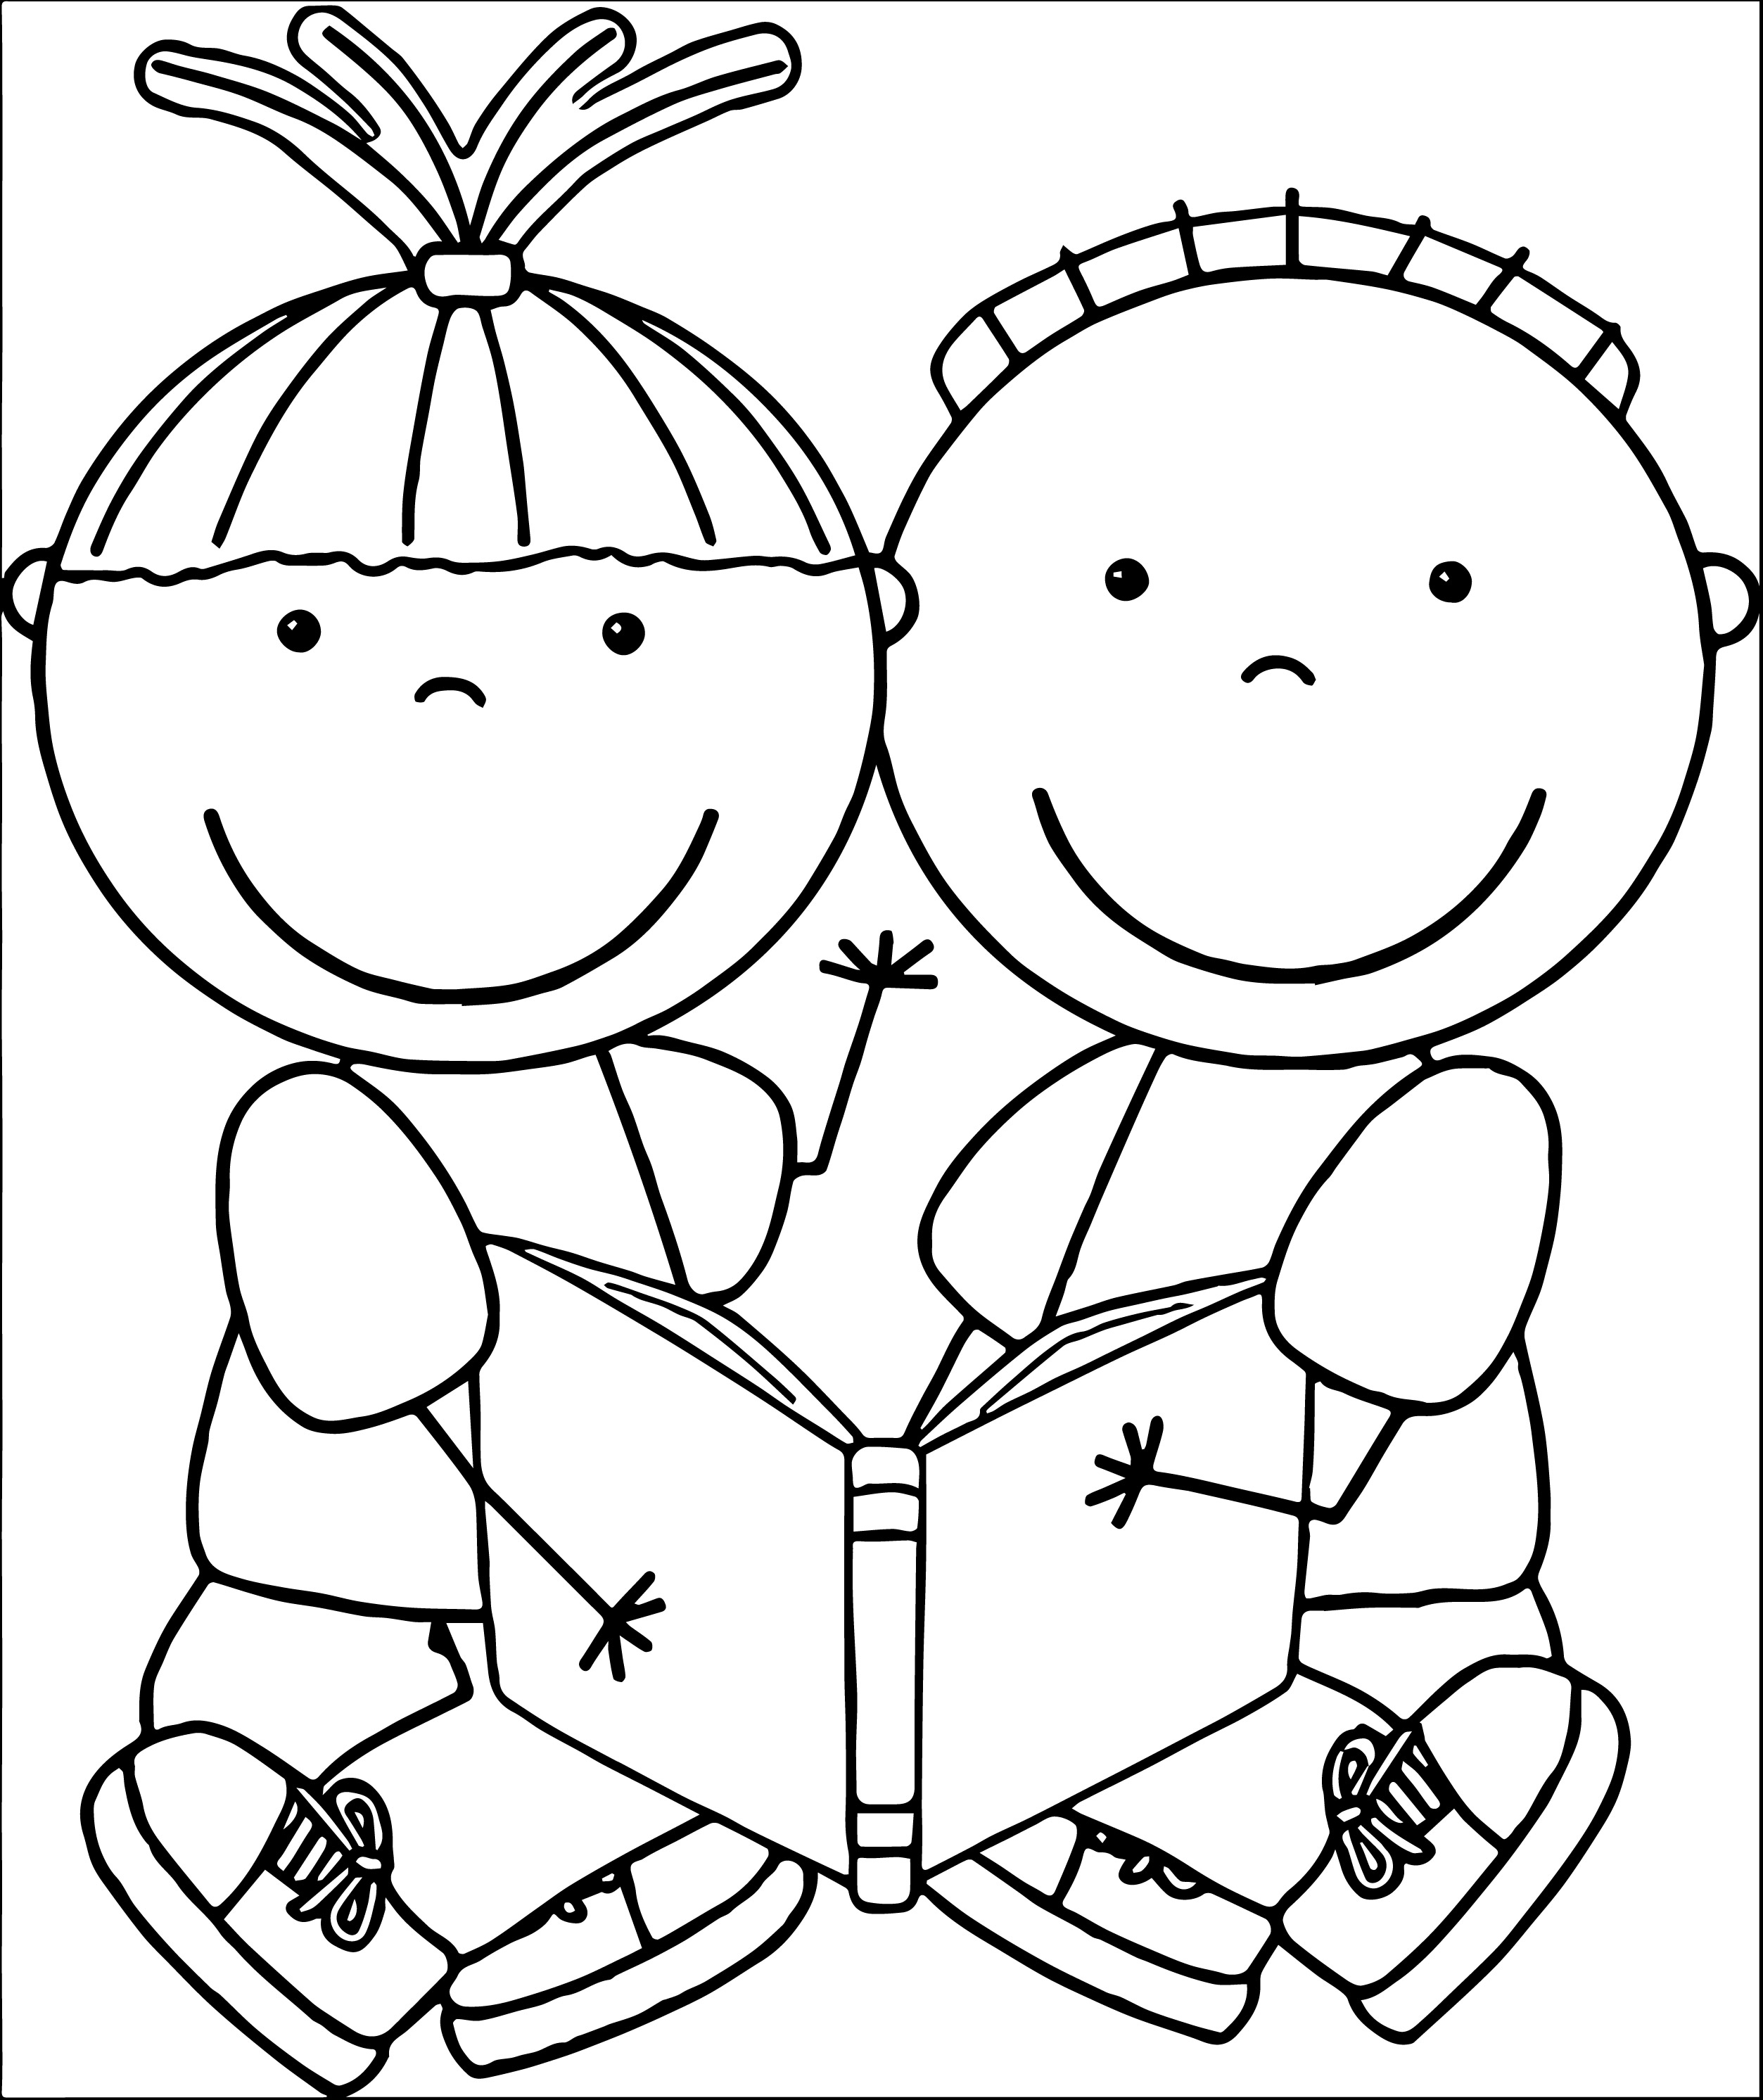 Children Reading Clipart Blac - Reading Clipart Black And White